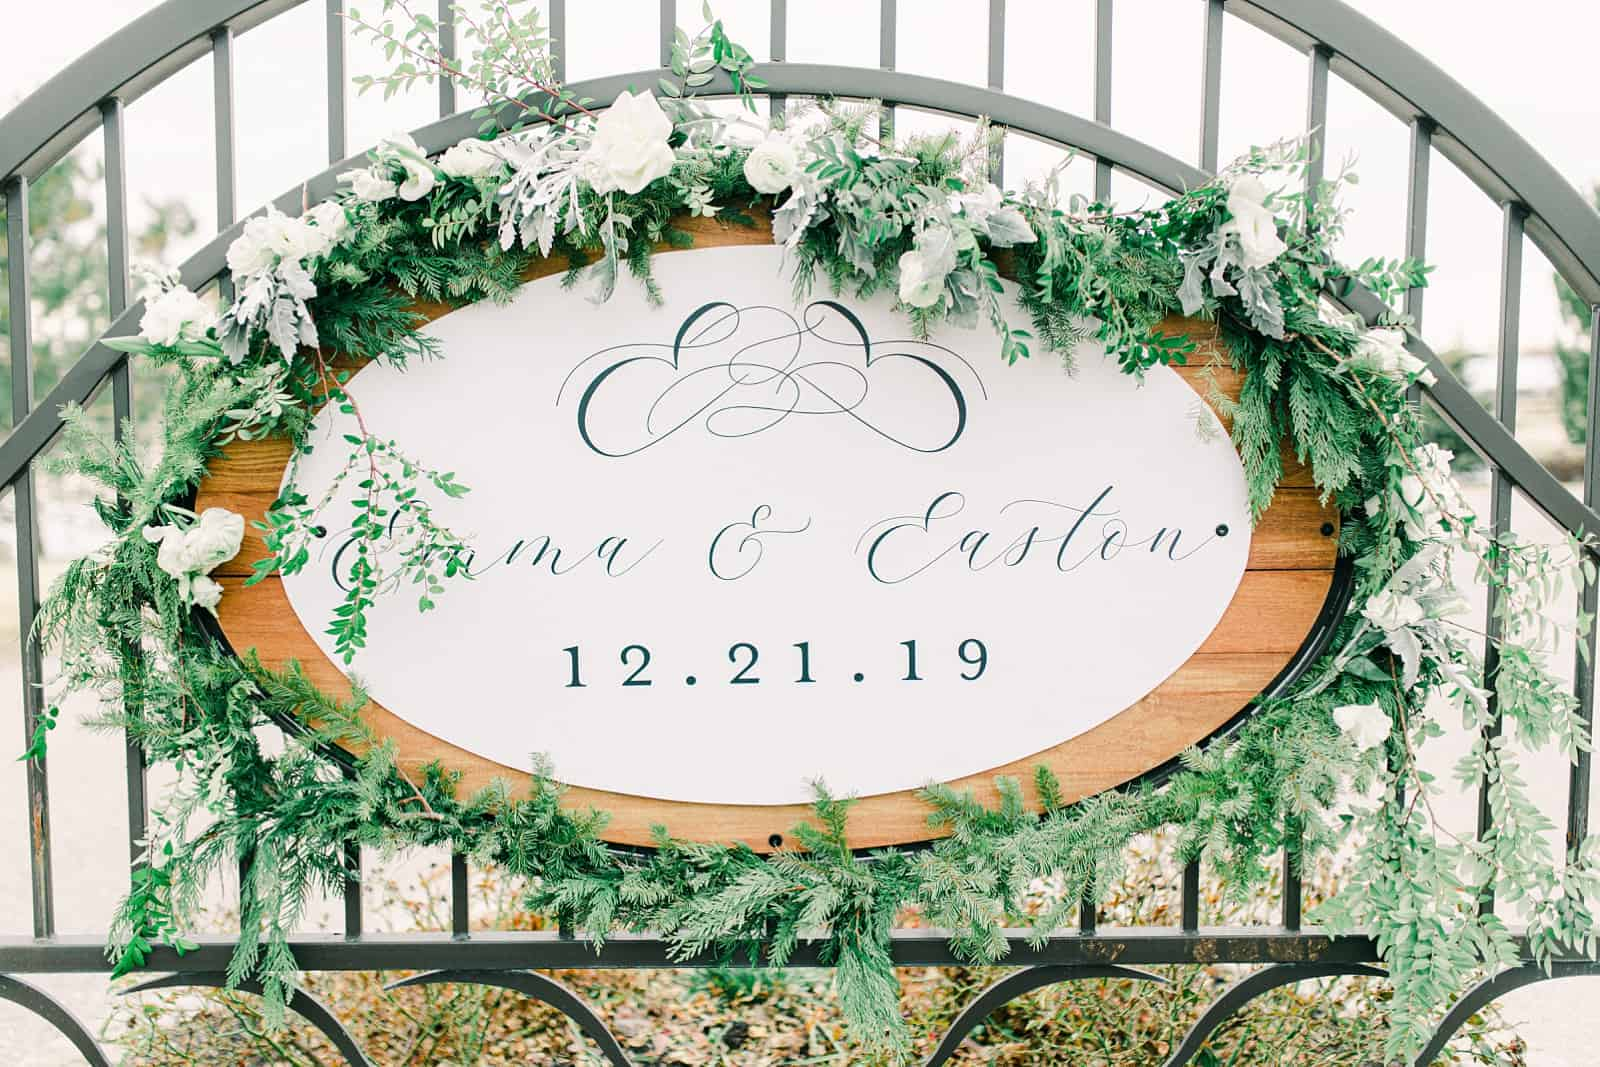 All white winter wedding with calligraphy wedding sign